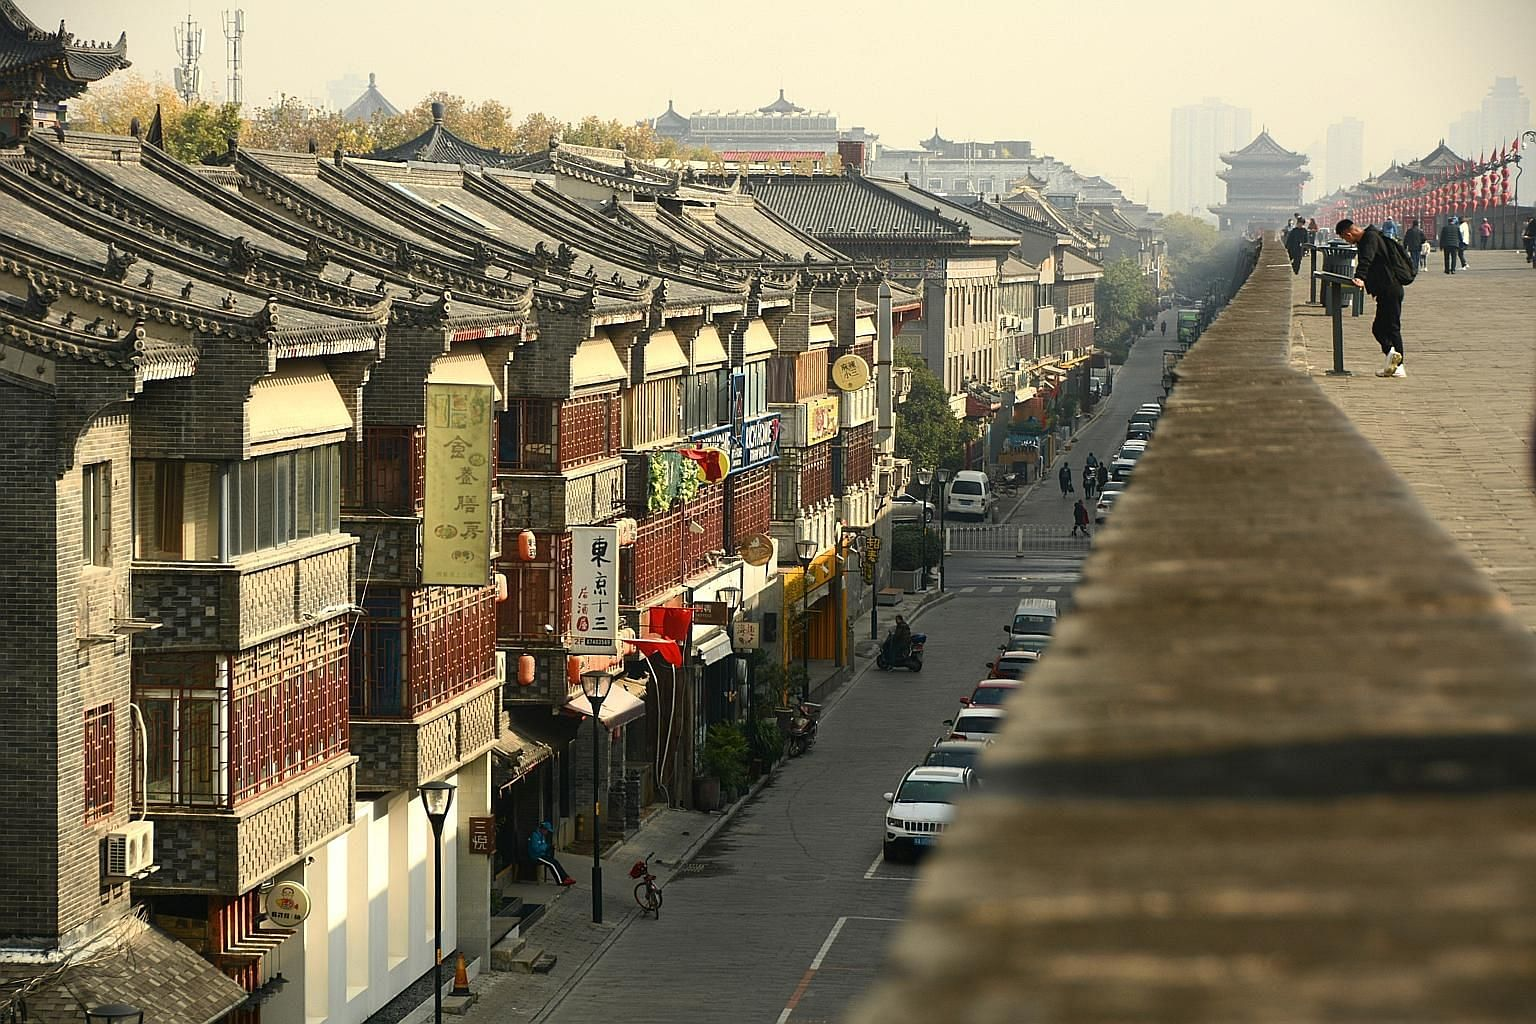 Poetry and painting flourished during the Tang dynasty and the works of famous poets are commemorated in the Daming Palace grounds. The 600-year-old wall in Xi'an gives a good view of the older parts of the city below. The top spans more than 10m wid